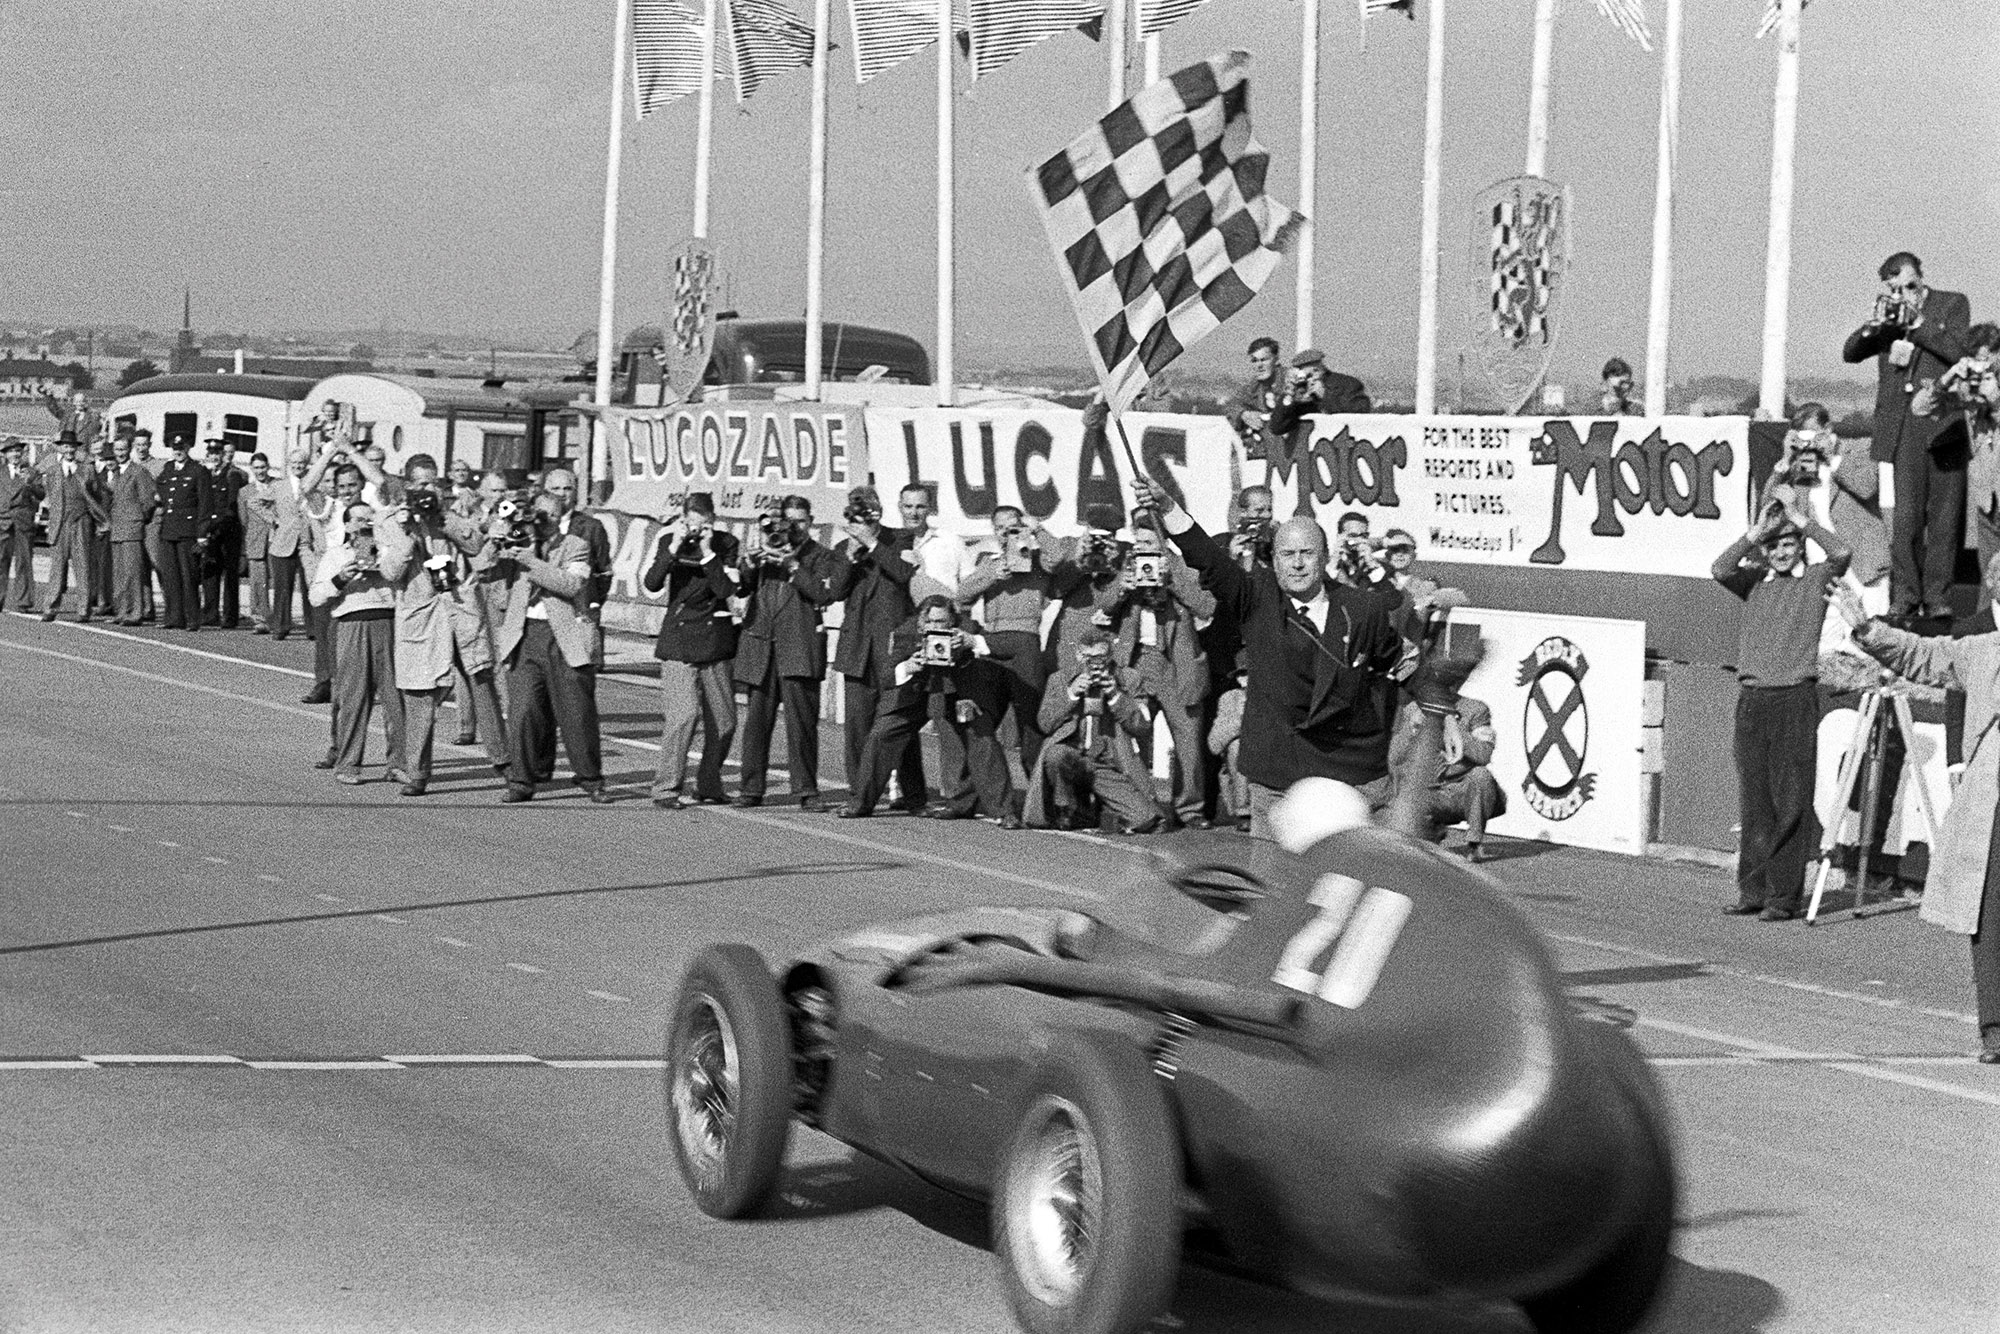 Stirling Moss wins the 1957 British Grand Prix with Tony Brooks for Vanwall